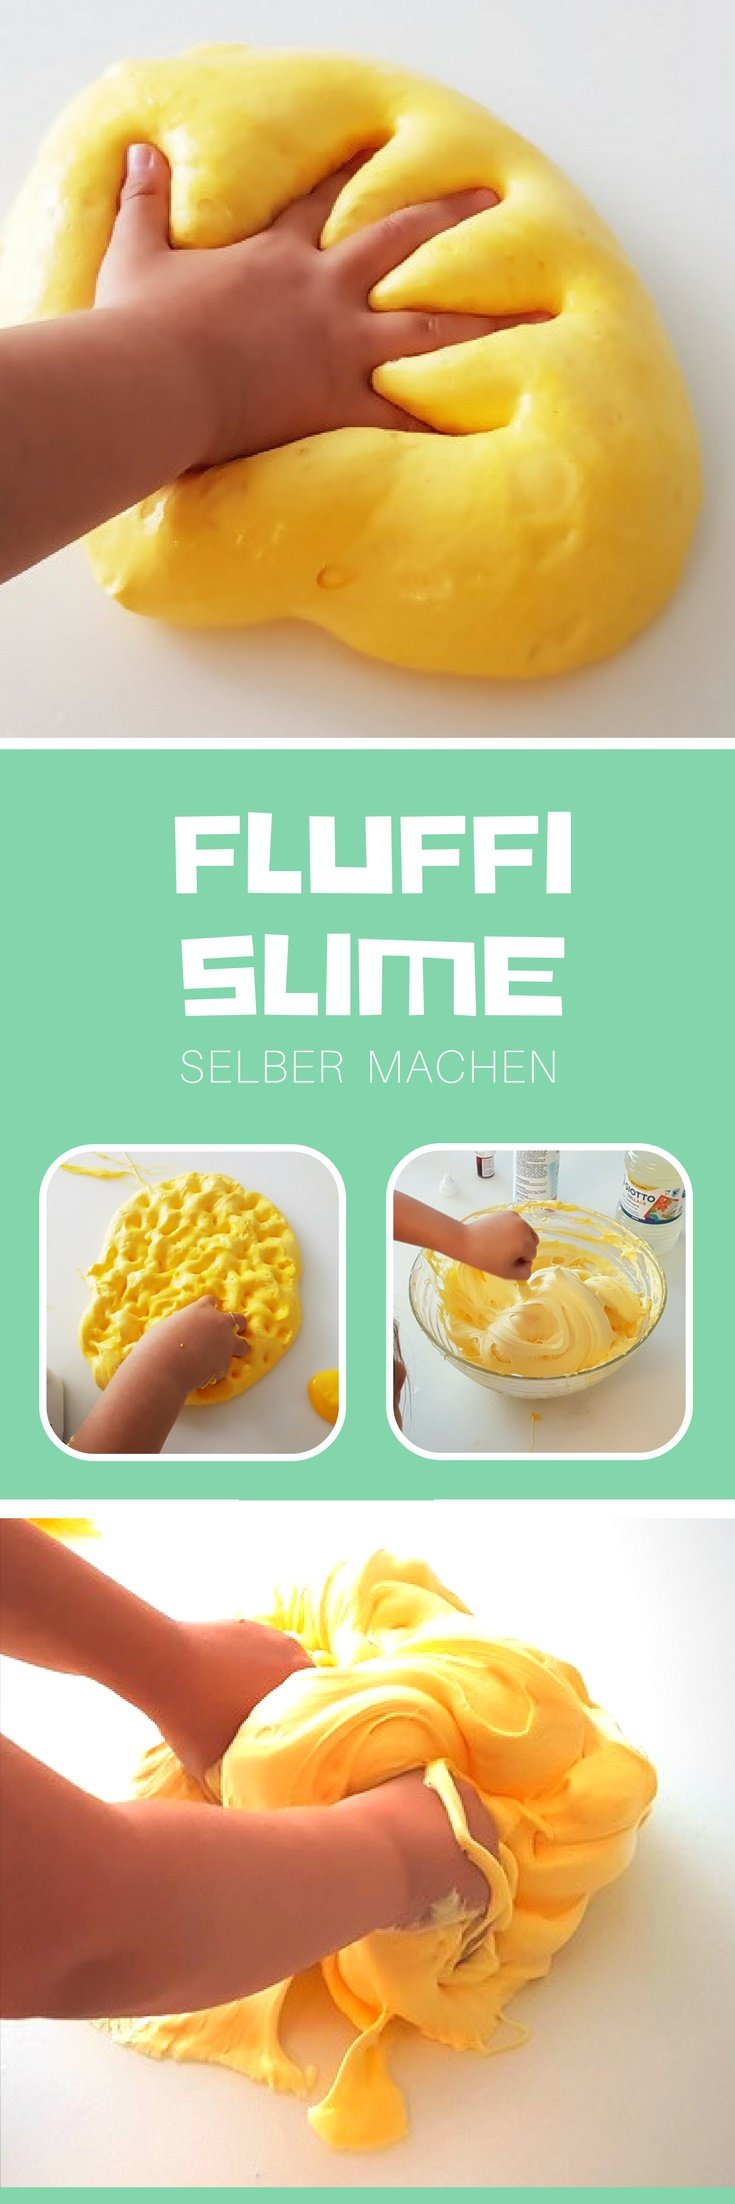 diy spielslime selber machen diy fr kinder ausprobieren. Black Bedroom Furniture Sets. Home Design Ideas